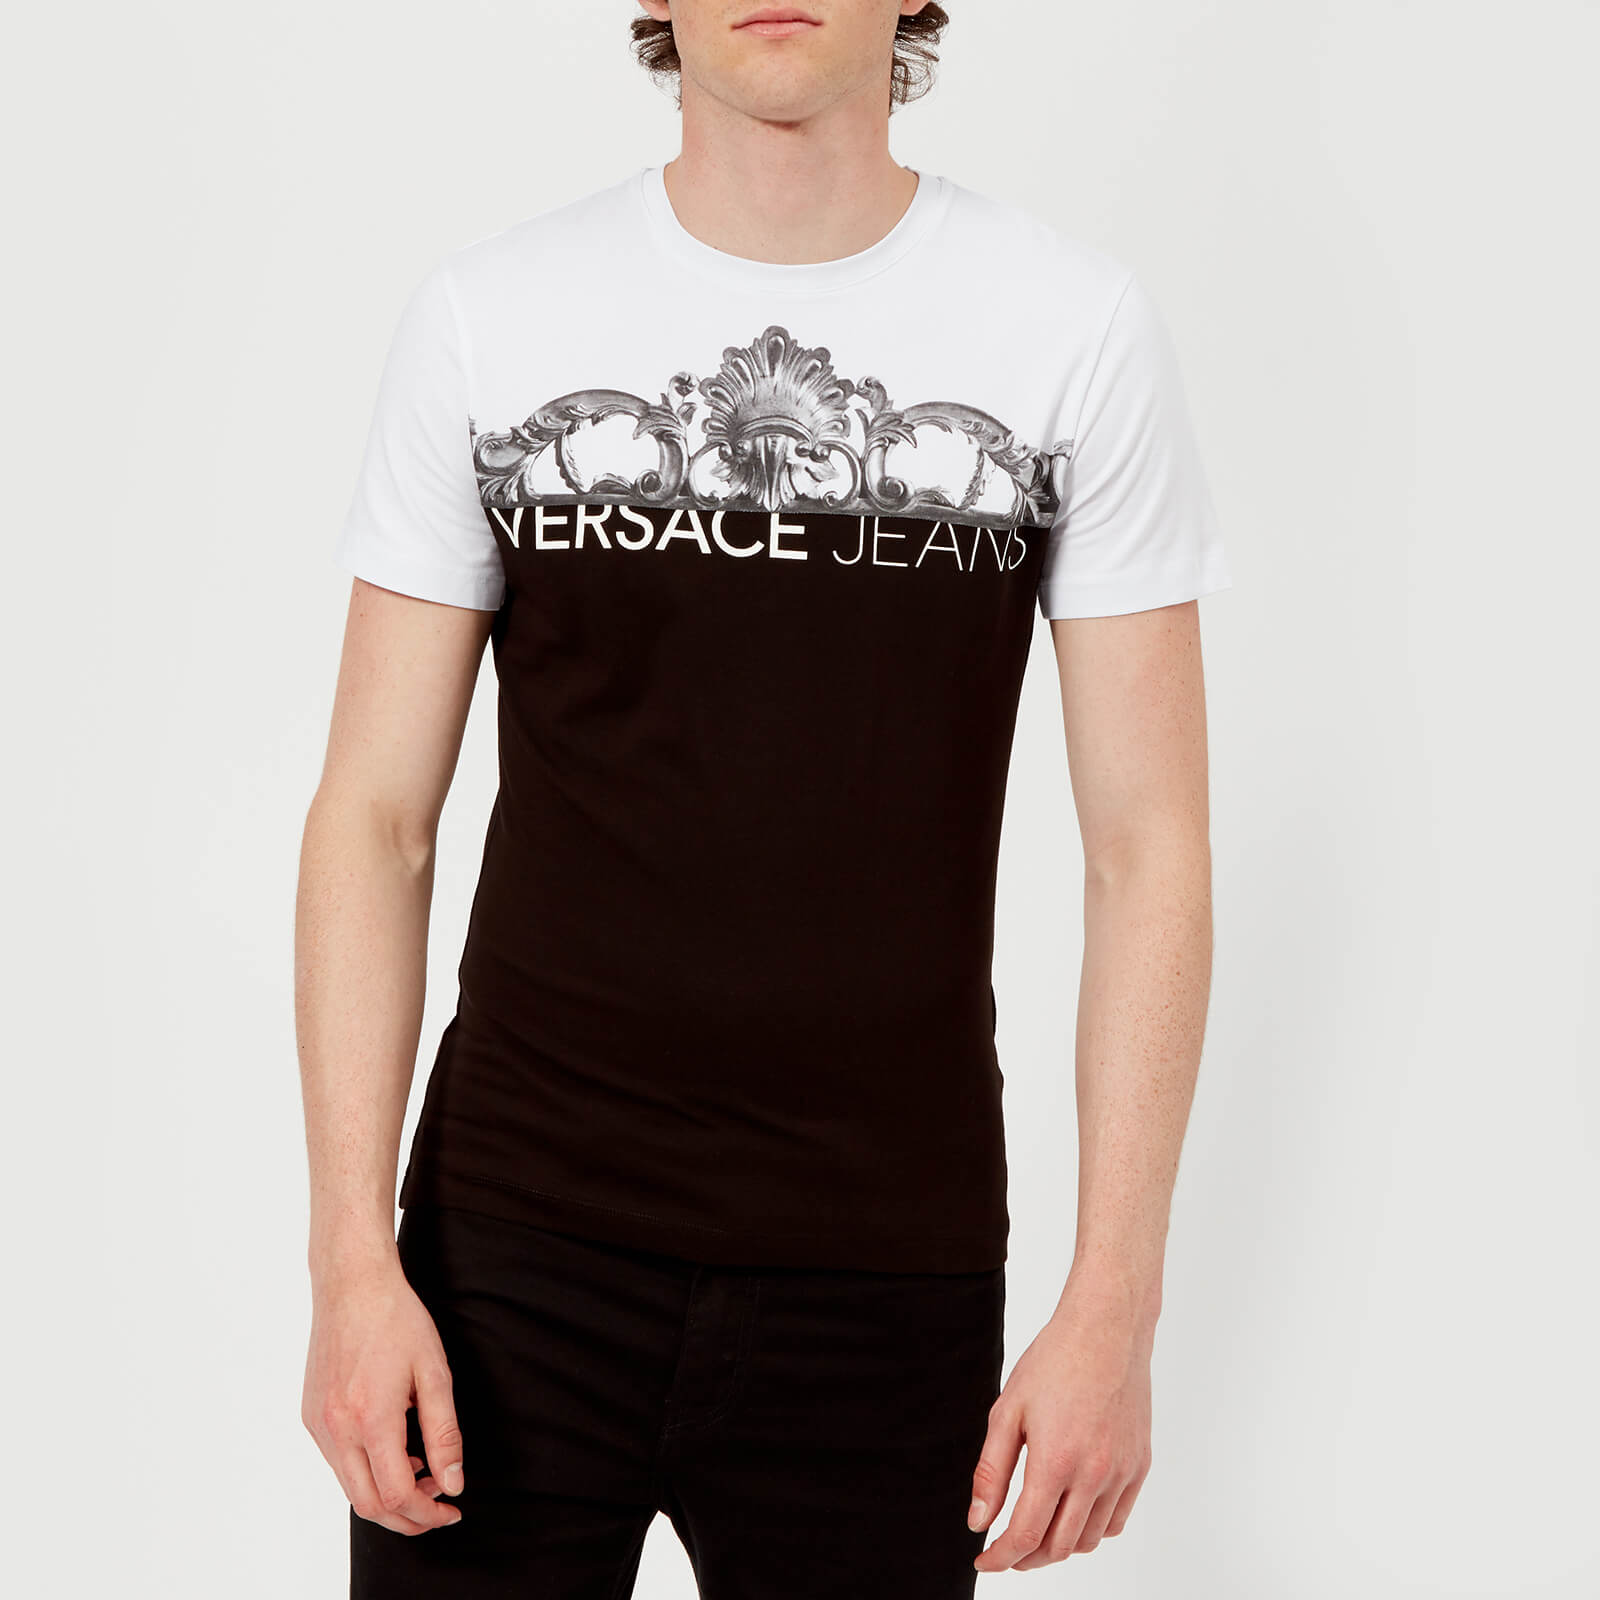 a9d61b6b7 Versace Jeans Men's Chest Script Logo T-Shirt - Black/White Clothing |  TheHut.com